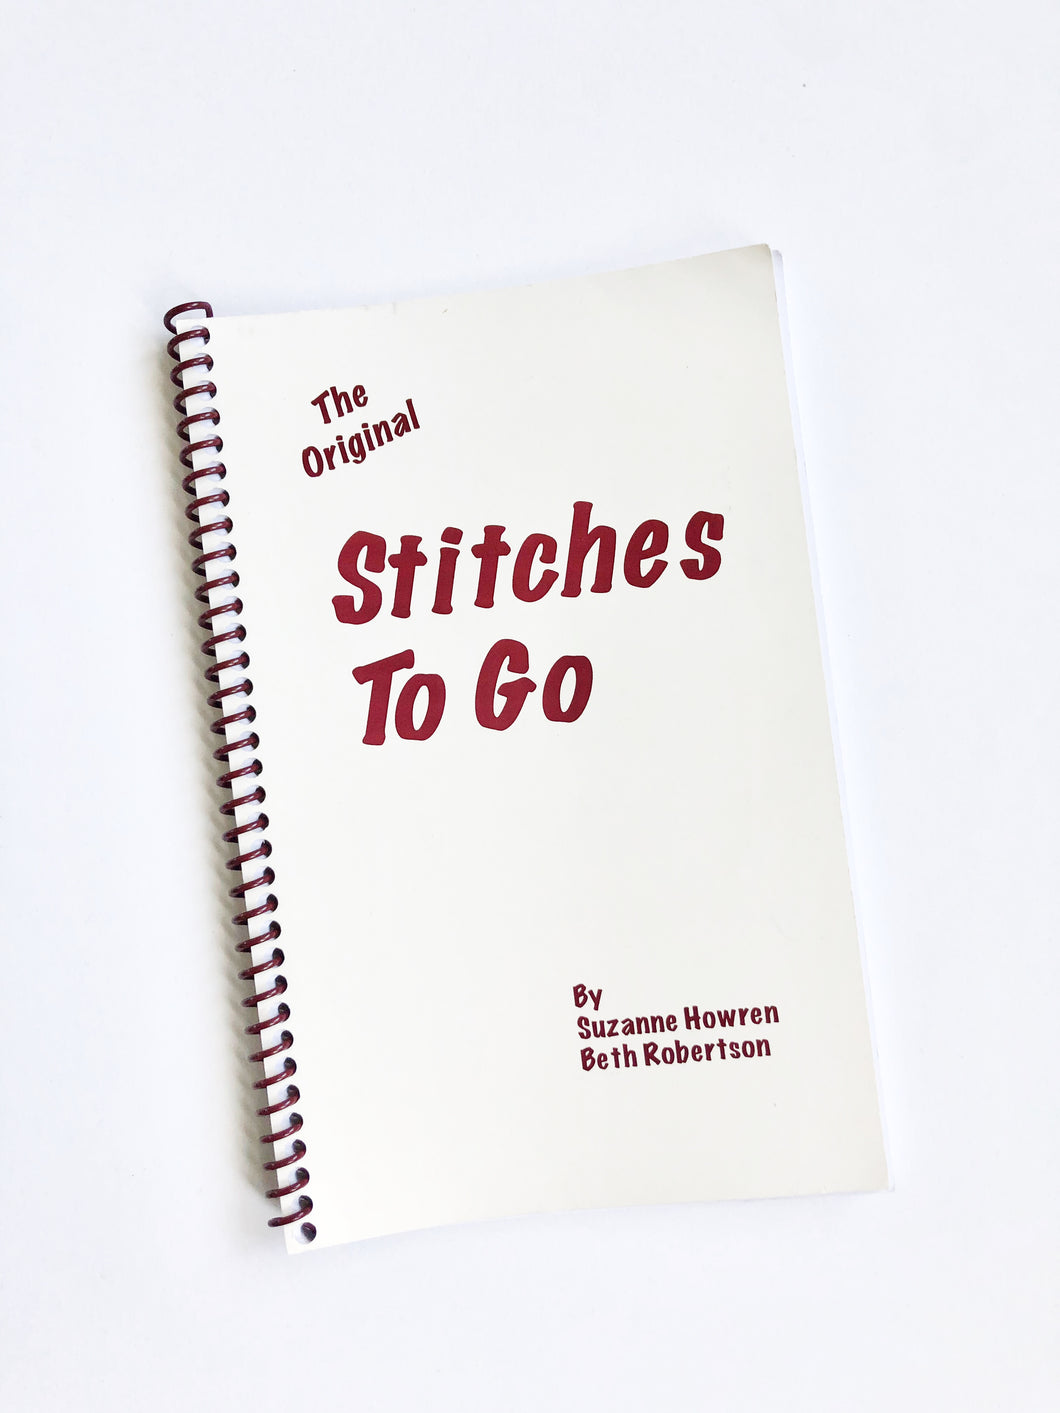 Stitches To Go by by Suzanne Howren and Beth Robertson